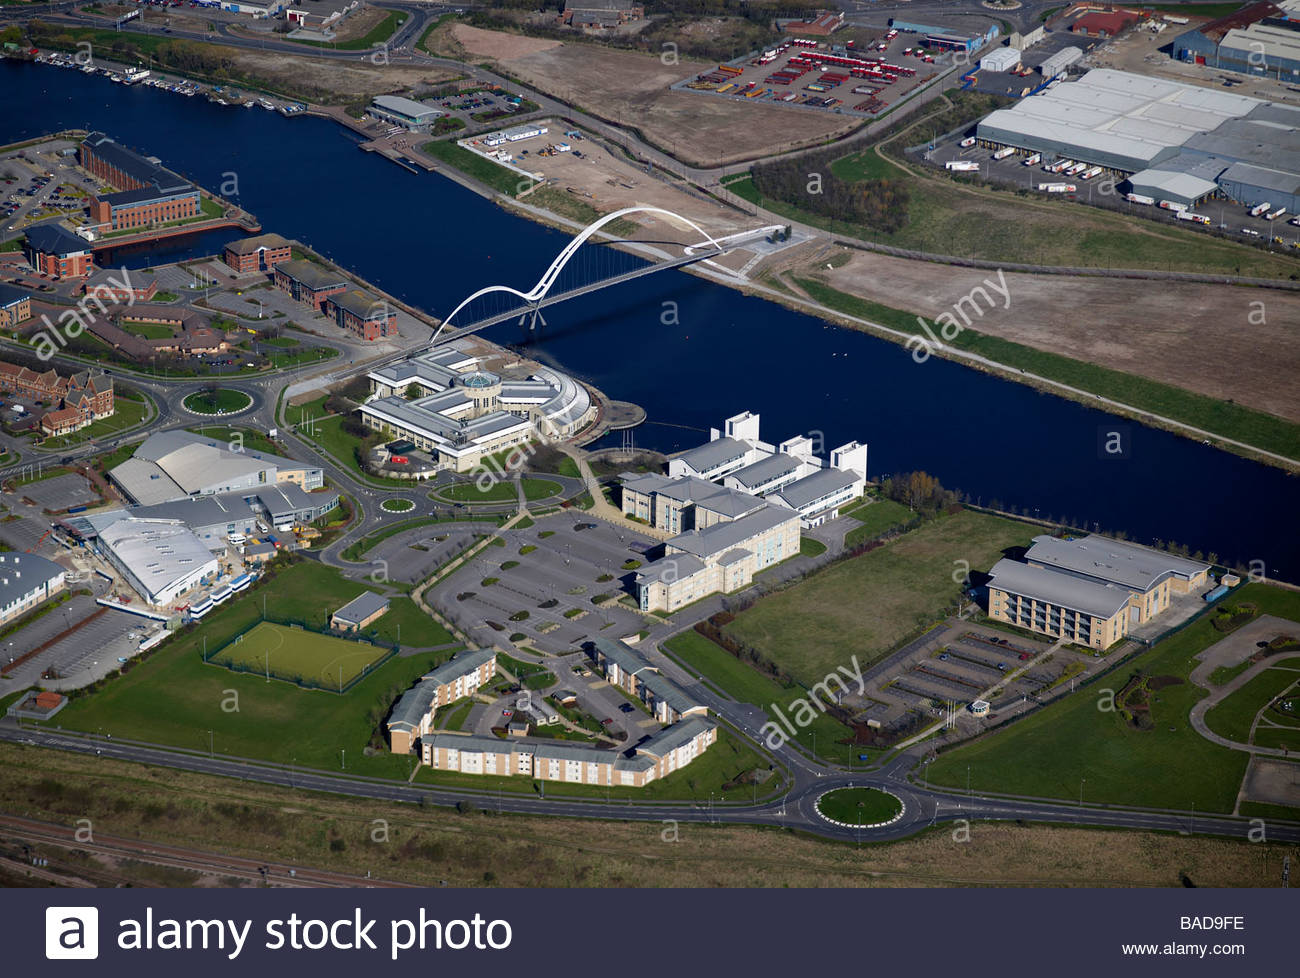 River Tees at Stockton upon Tees, North East England, showing the new Infinity pedestrian bridge and Queens University - Stock Image